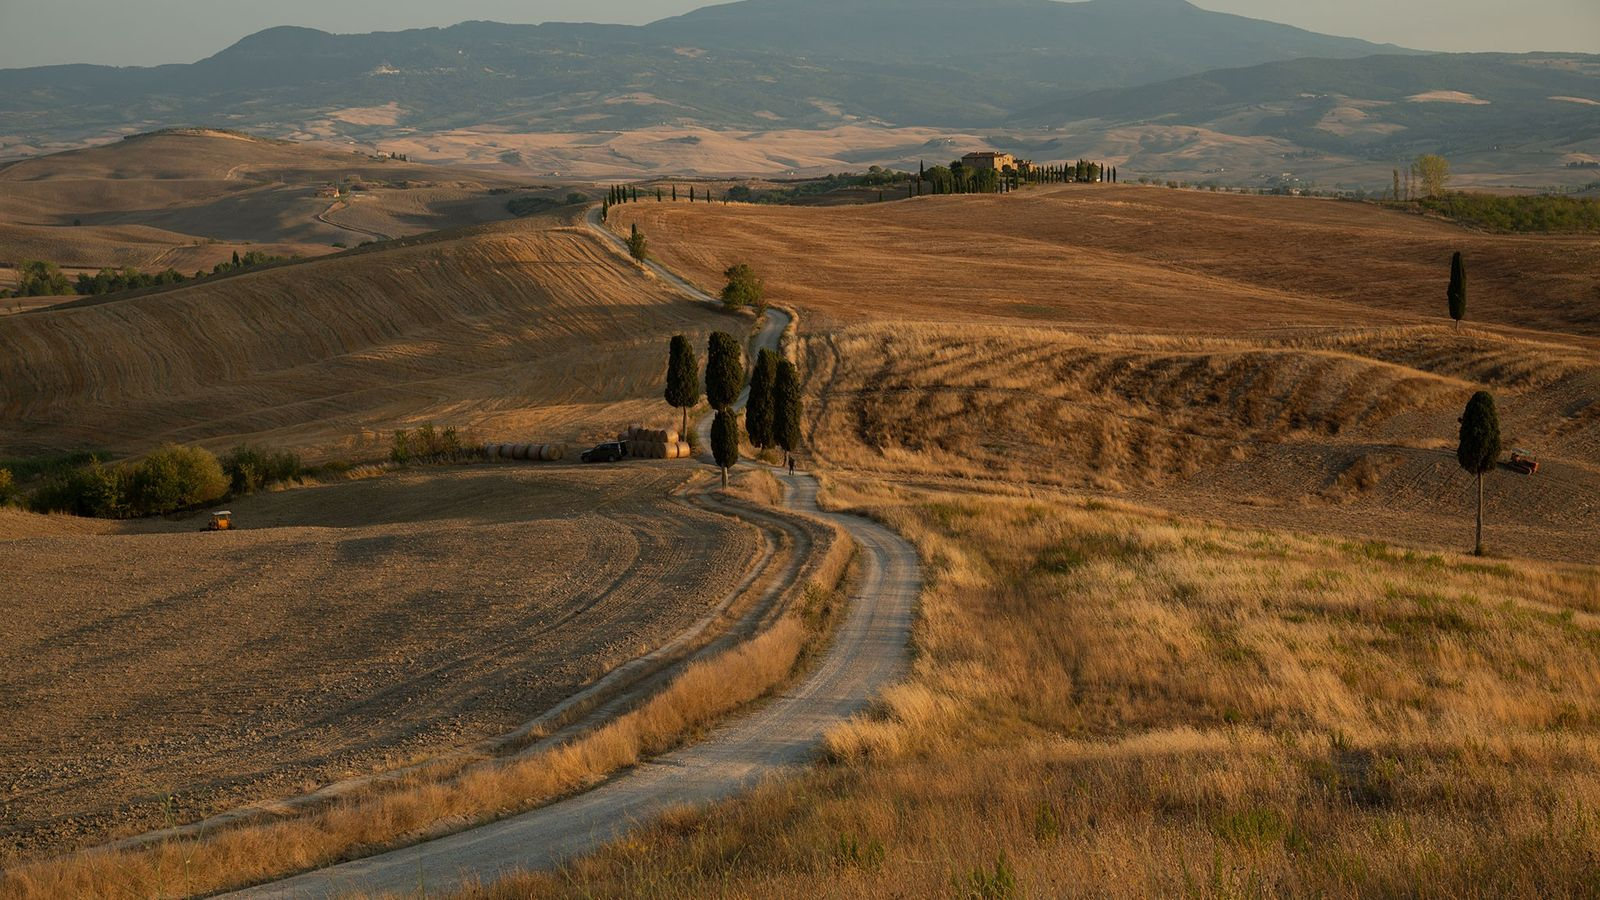 At day's end, sunlight gilds Tuscany's Val d'Orcia, a landscape that's been depicted in Renaissance art ...